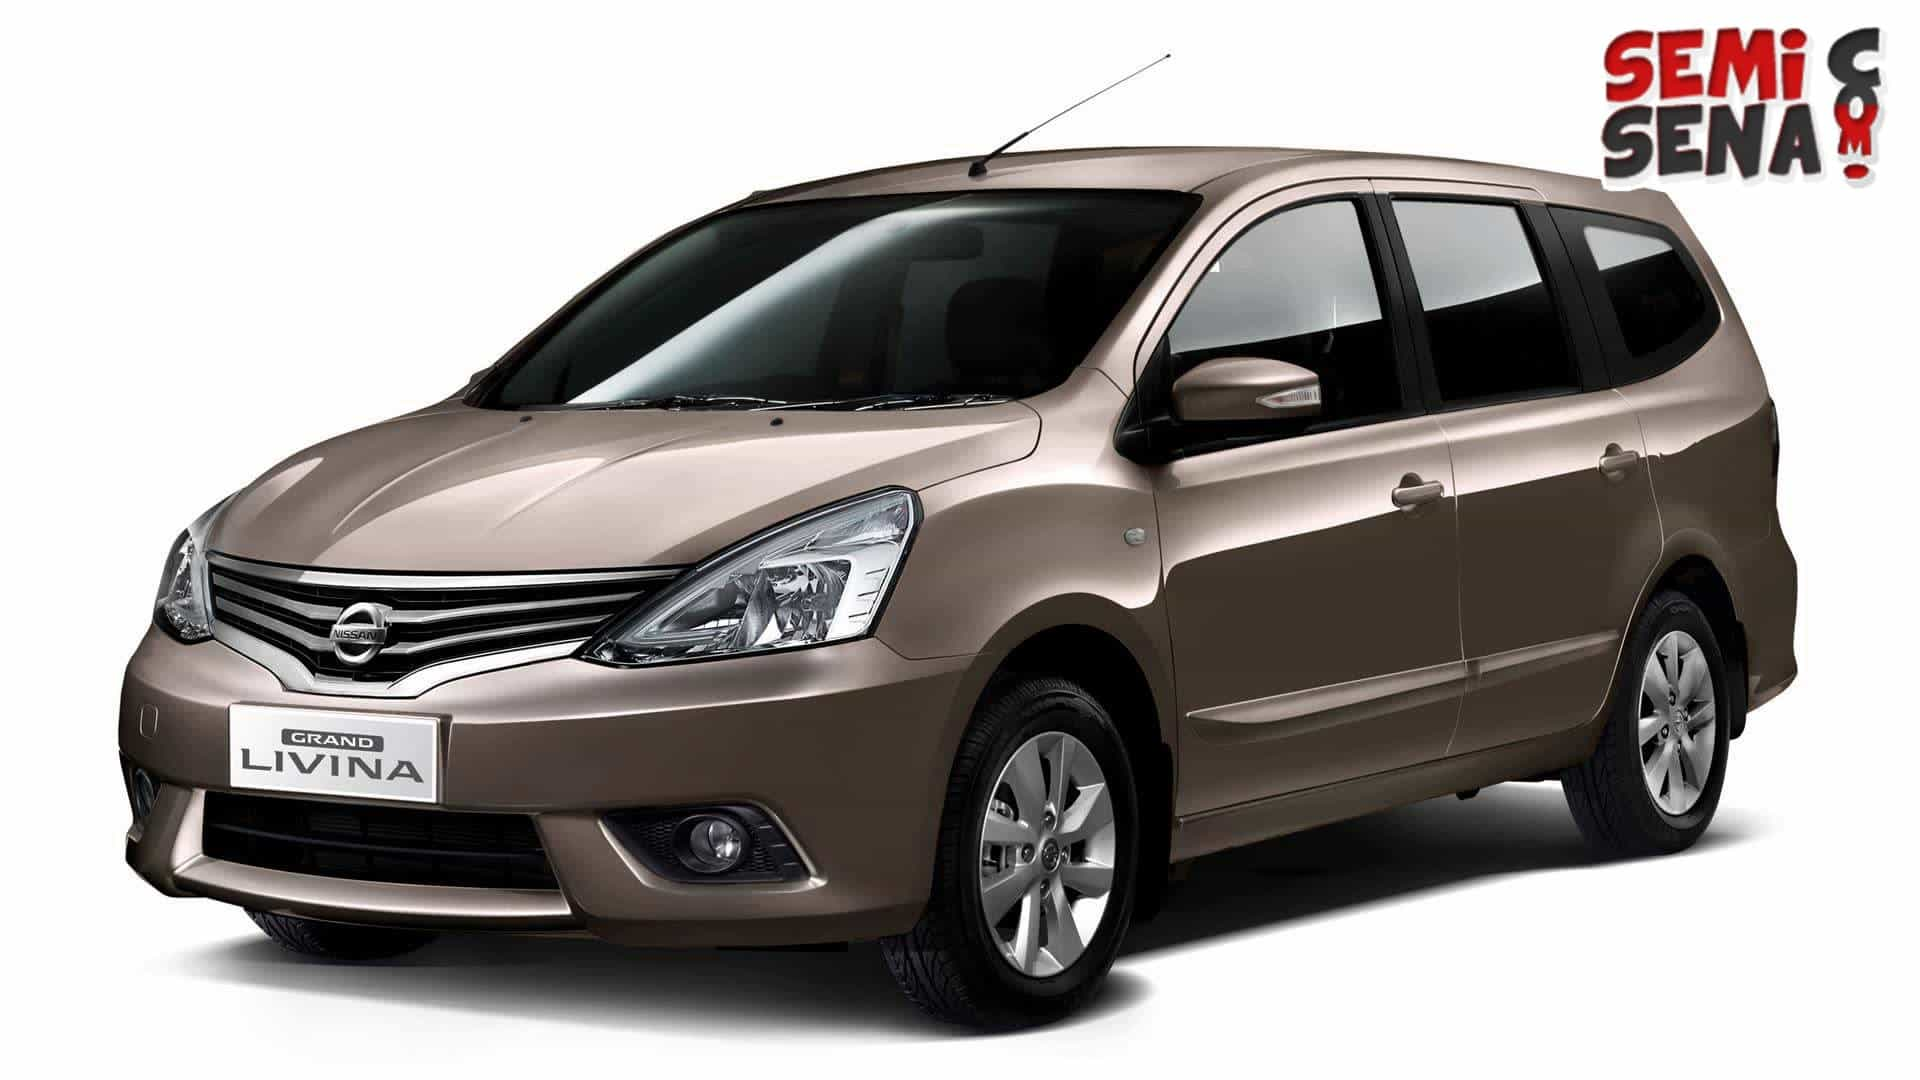 Nissan Grand Livina 2016 Hanya Usung Minor Change